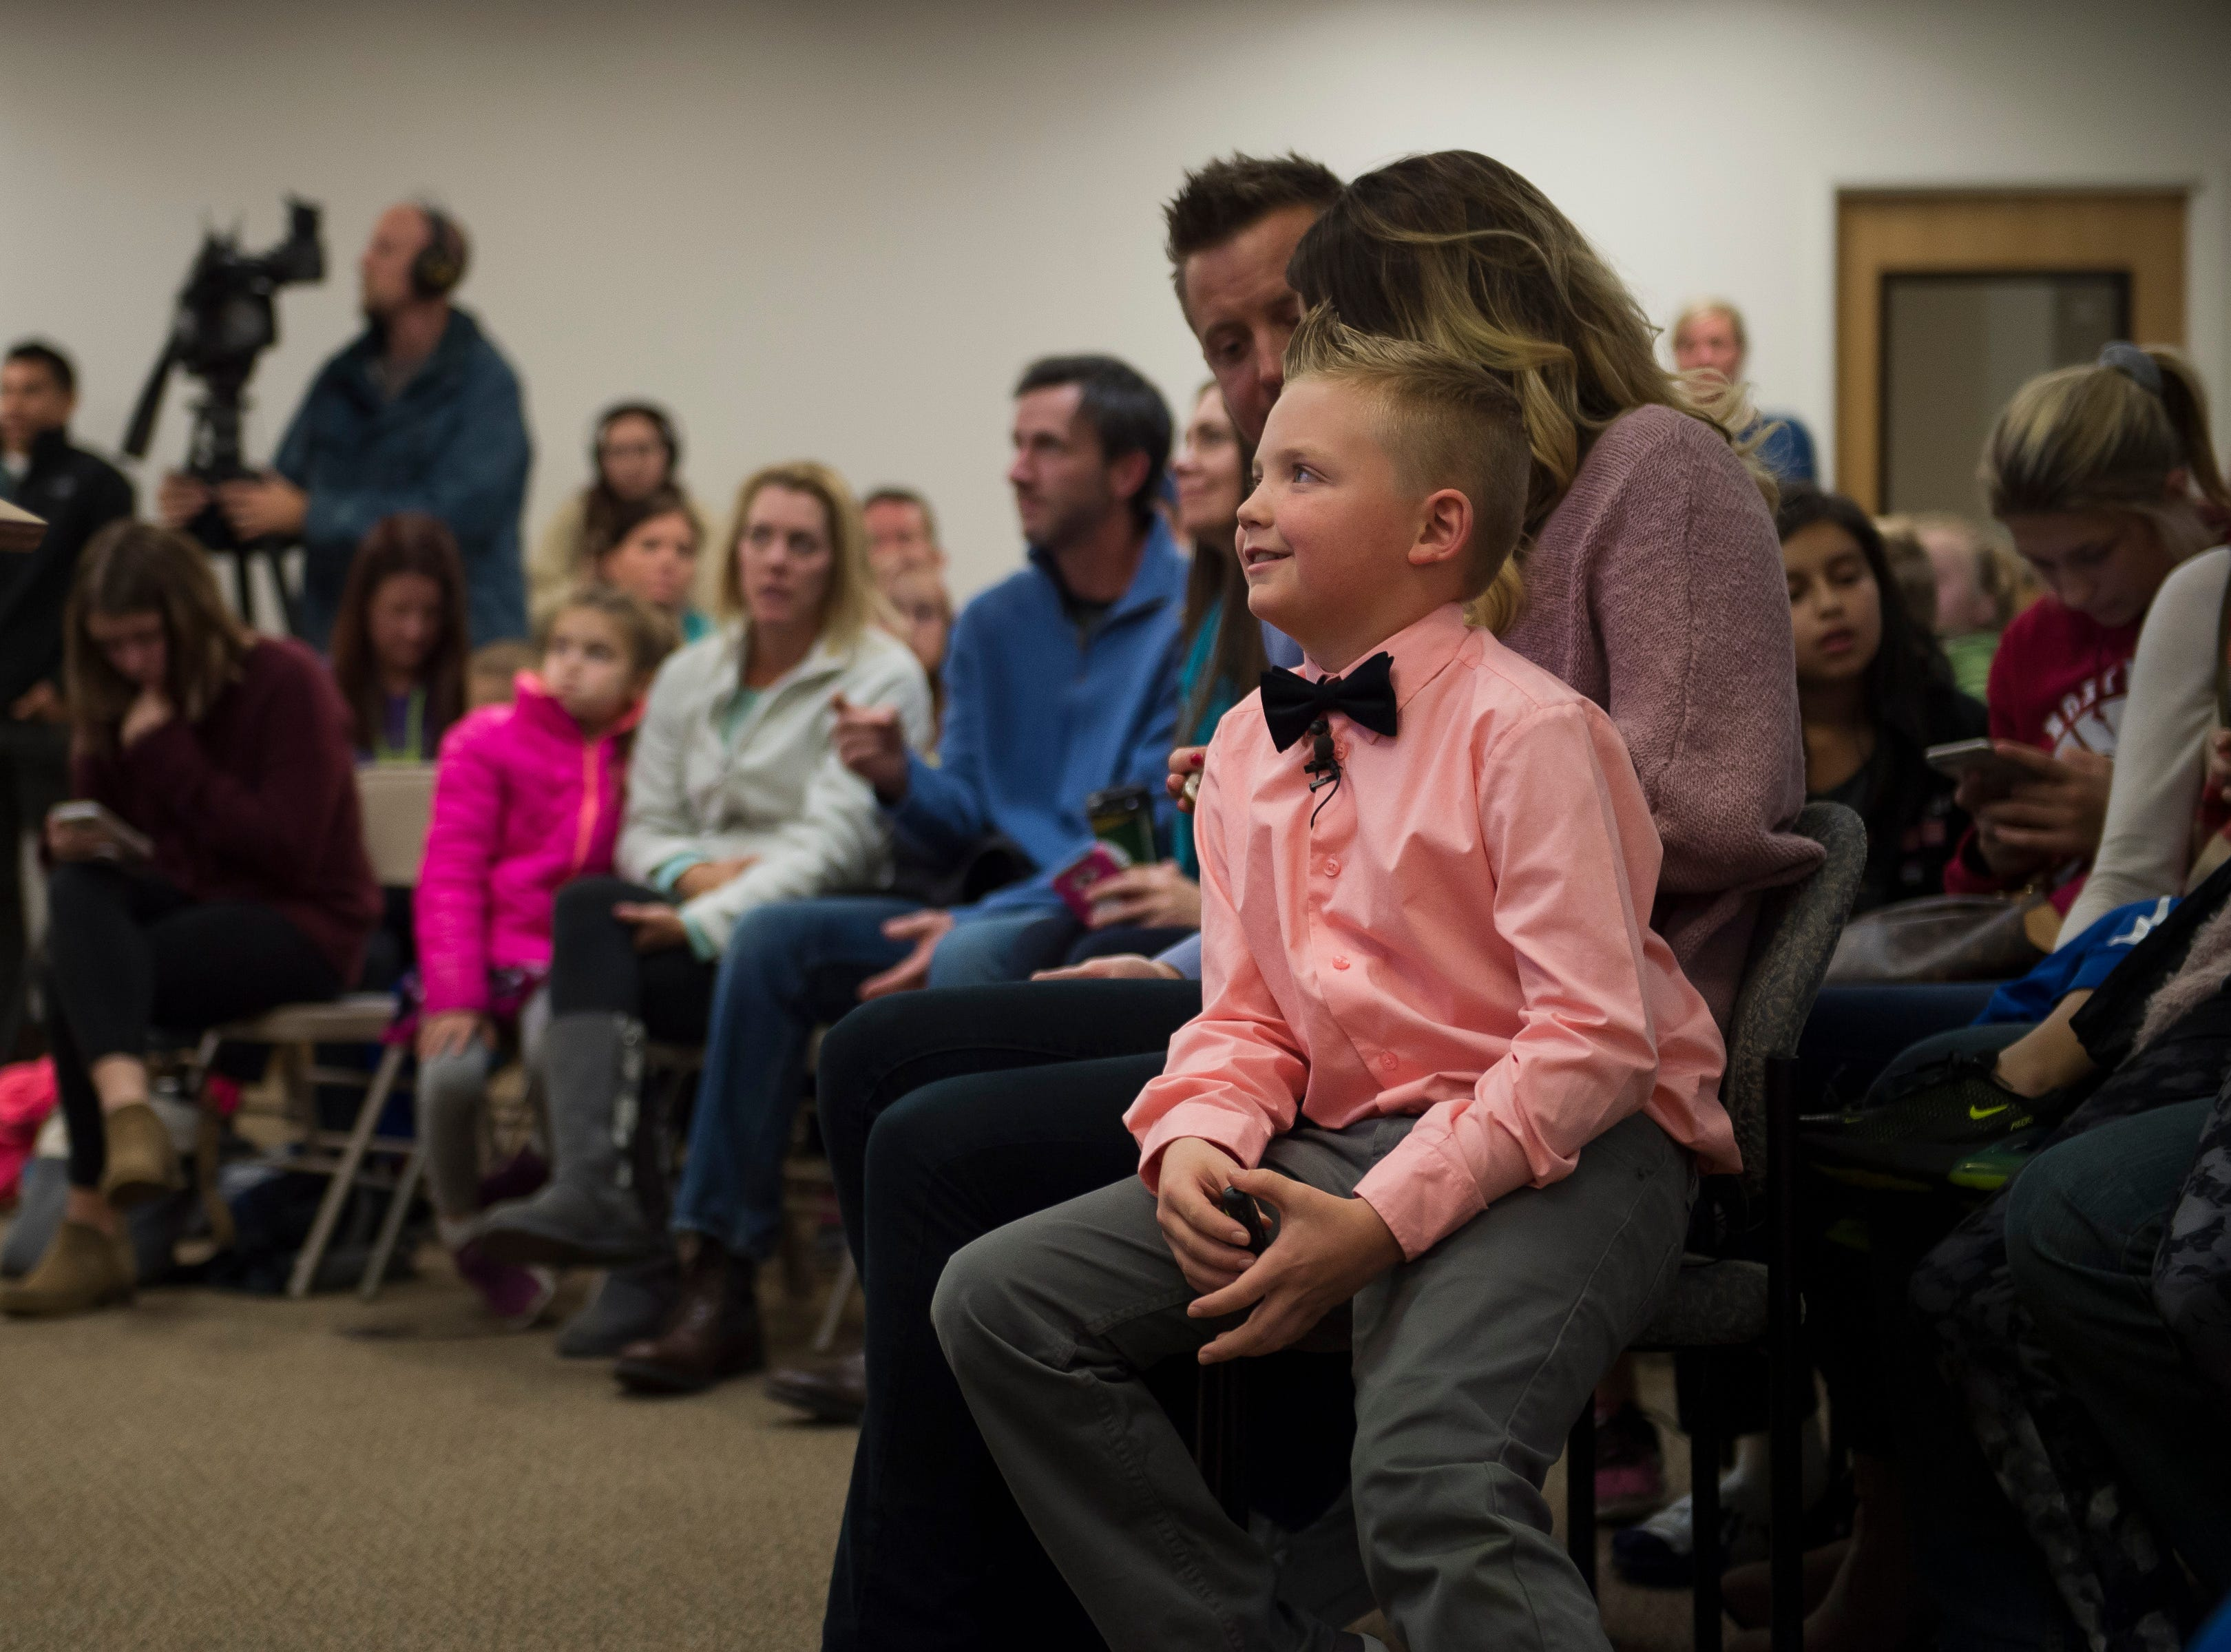 Range View Elementary School third grader Dane Best sits on his mother, Brooke Best's, lap during a town board meeting where he presented his argument to change a law in Severance that bans snowball fights on Monday, Dec. 3, 2018, at the Town Hall in Severance, Colo. The board voted unanimously to approve the law change.